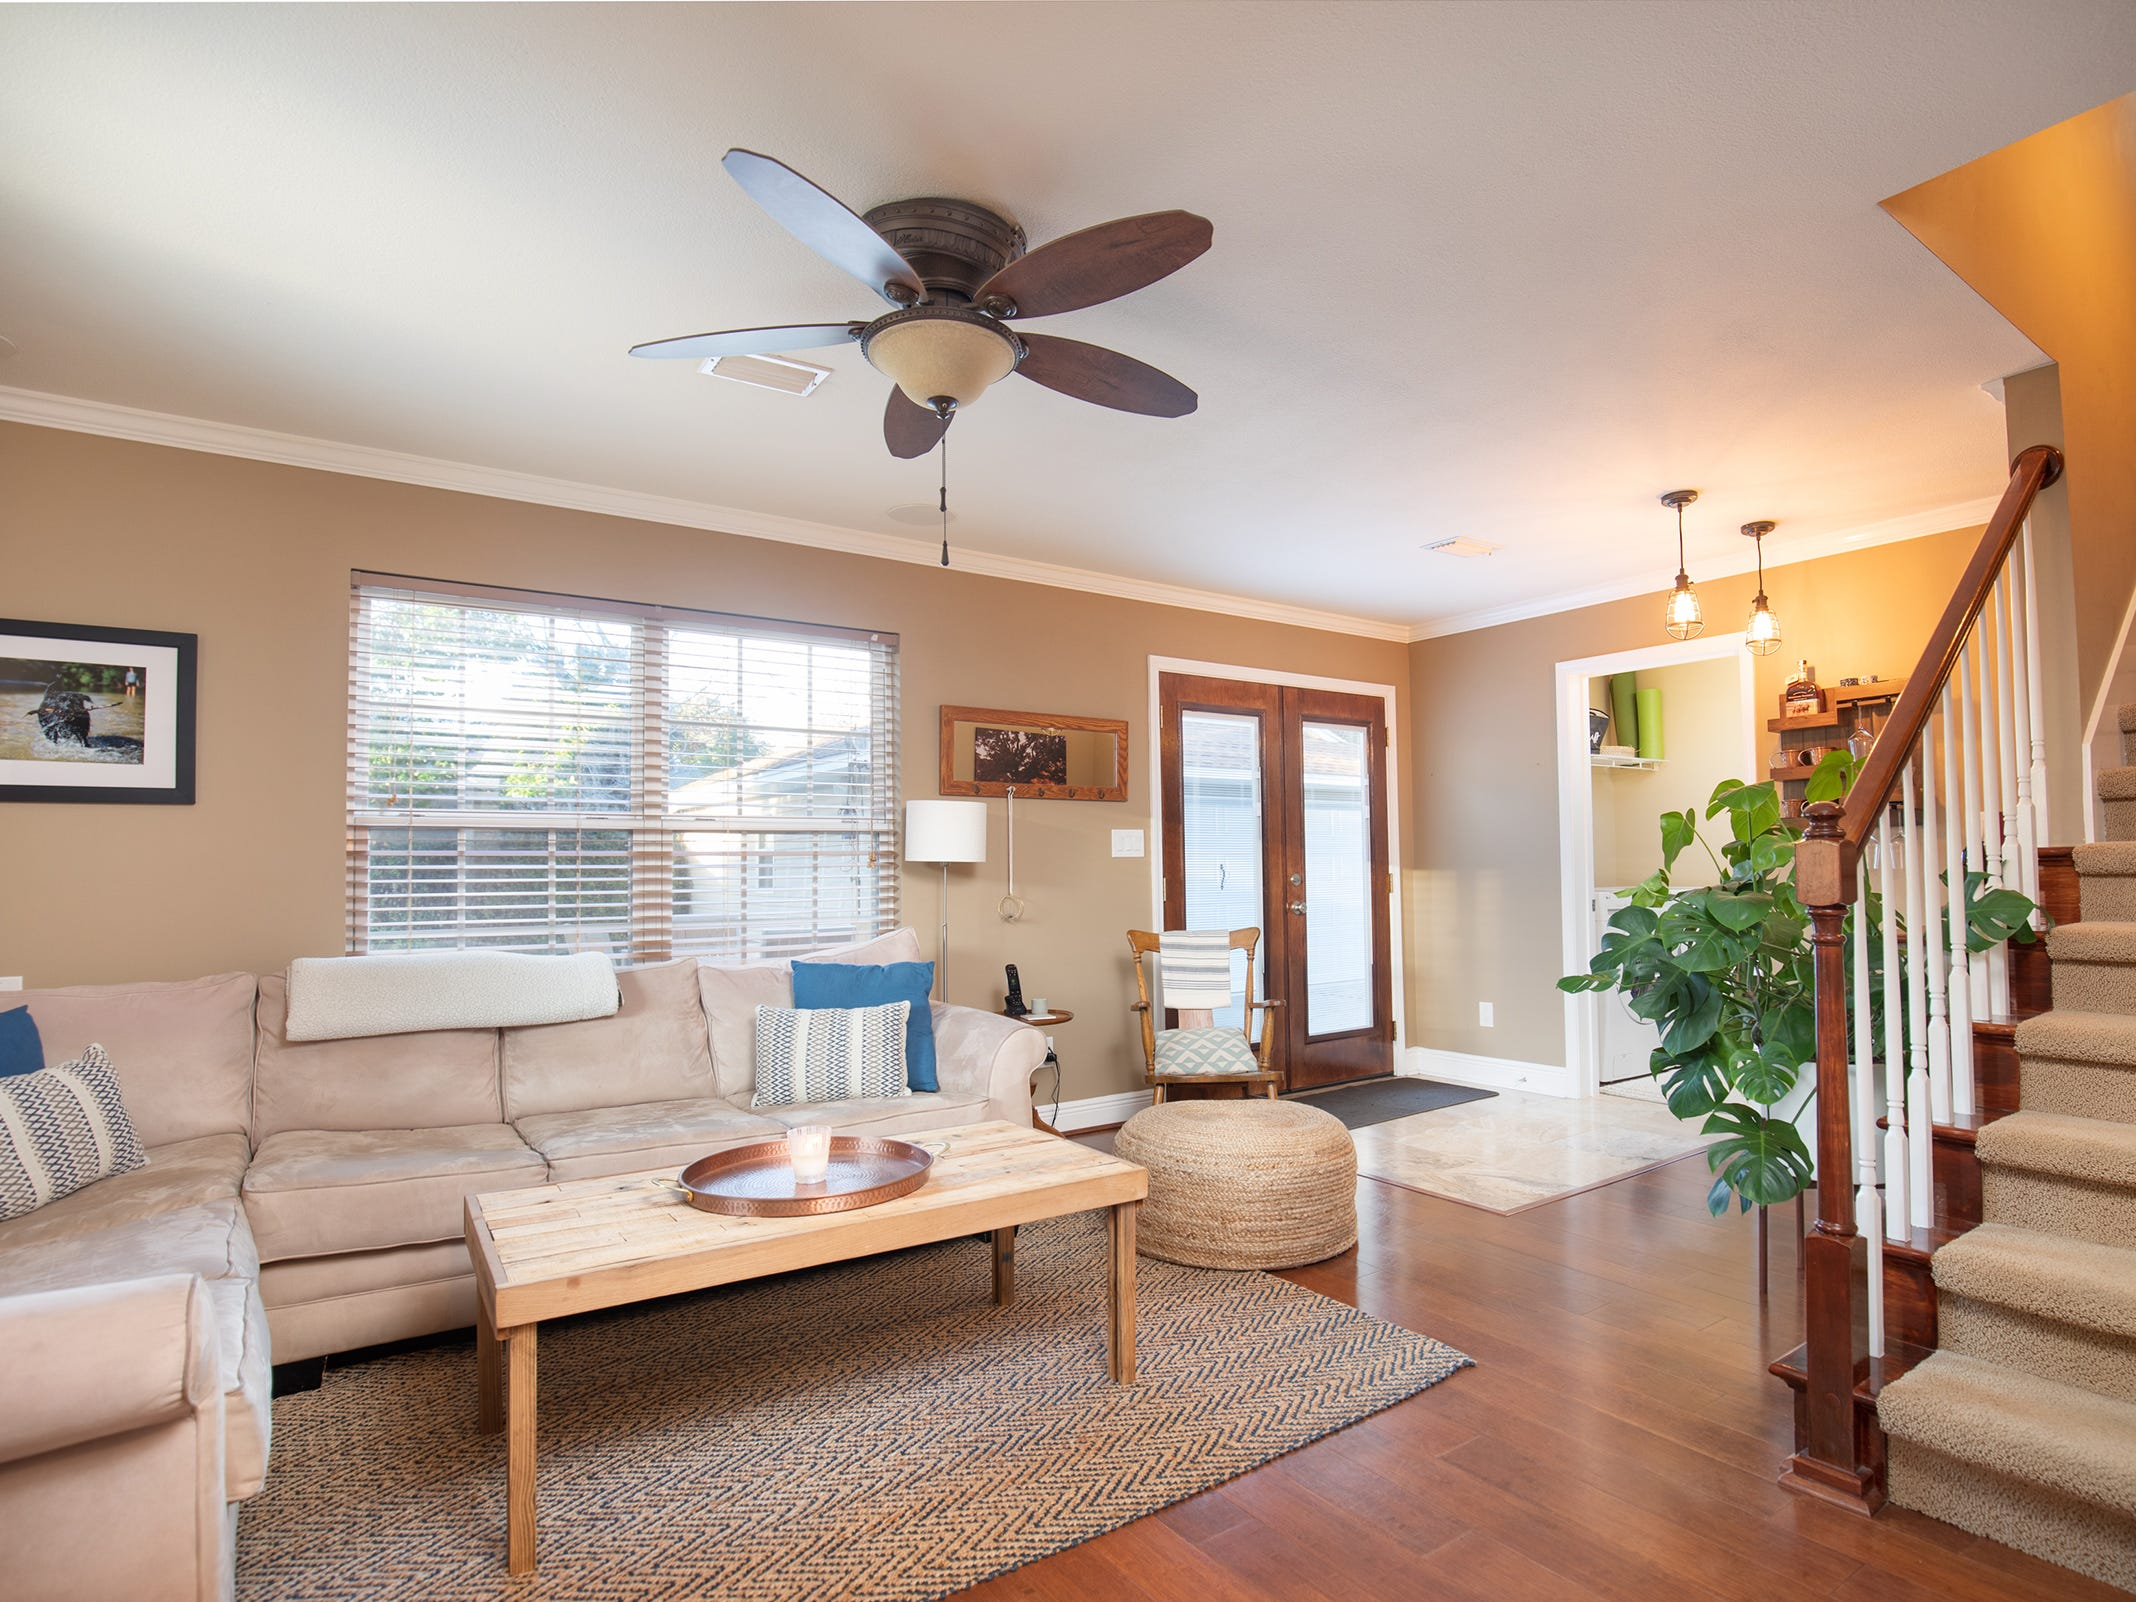 1516 East Brainerd St.An additional living area with access to the pool deck.